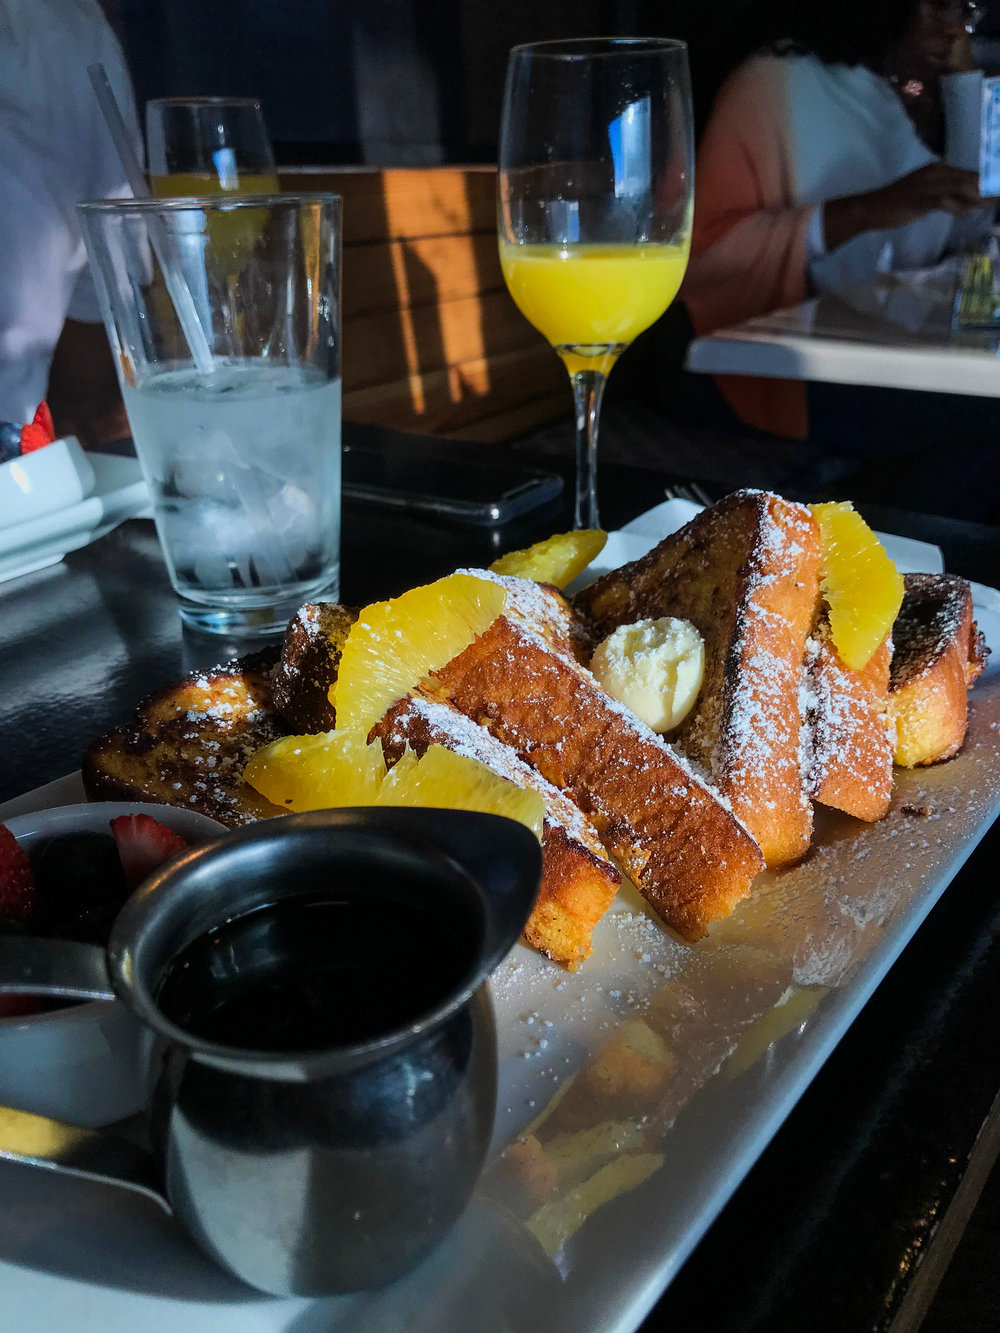 Grand Marnier French Toast from Eat This Cafe - With real maple syrup.$12.50